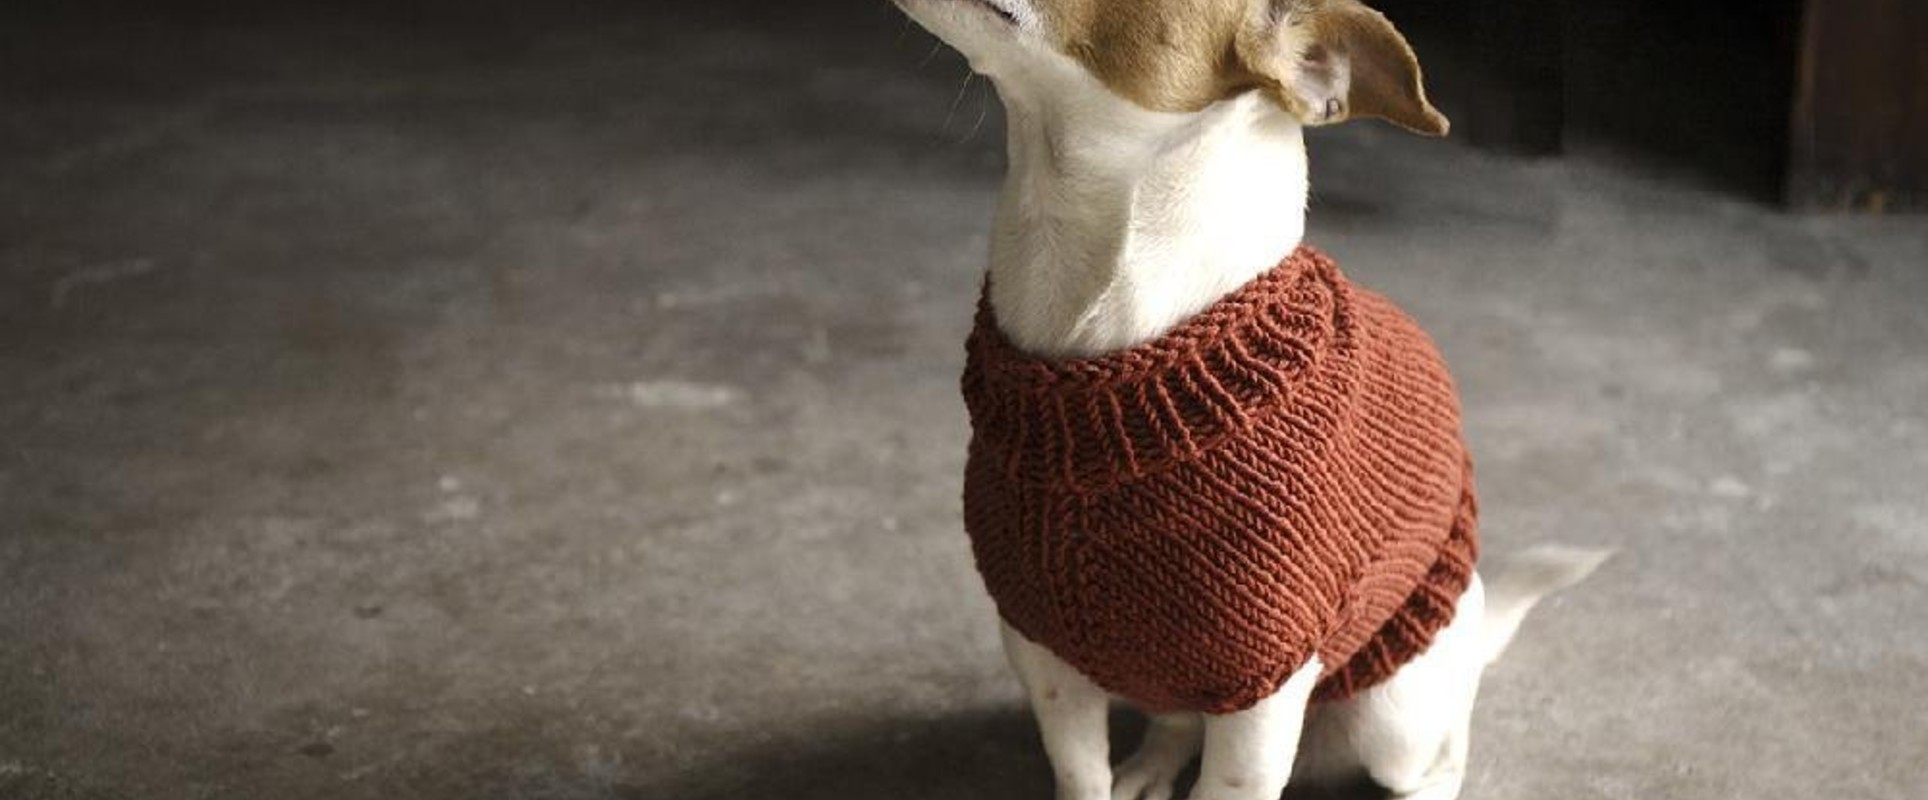 Dachshund Jumper Knitting Pattern Top 5 Free Dog Sweater Knitting Patterns Lovecrafts